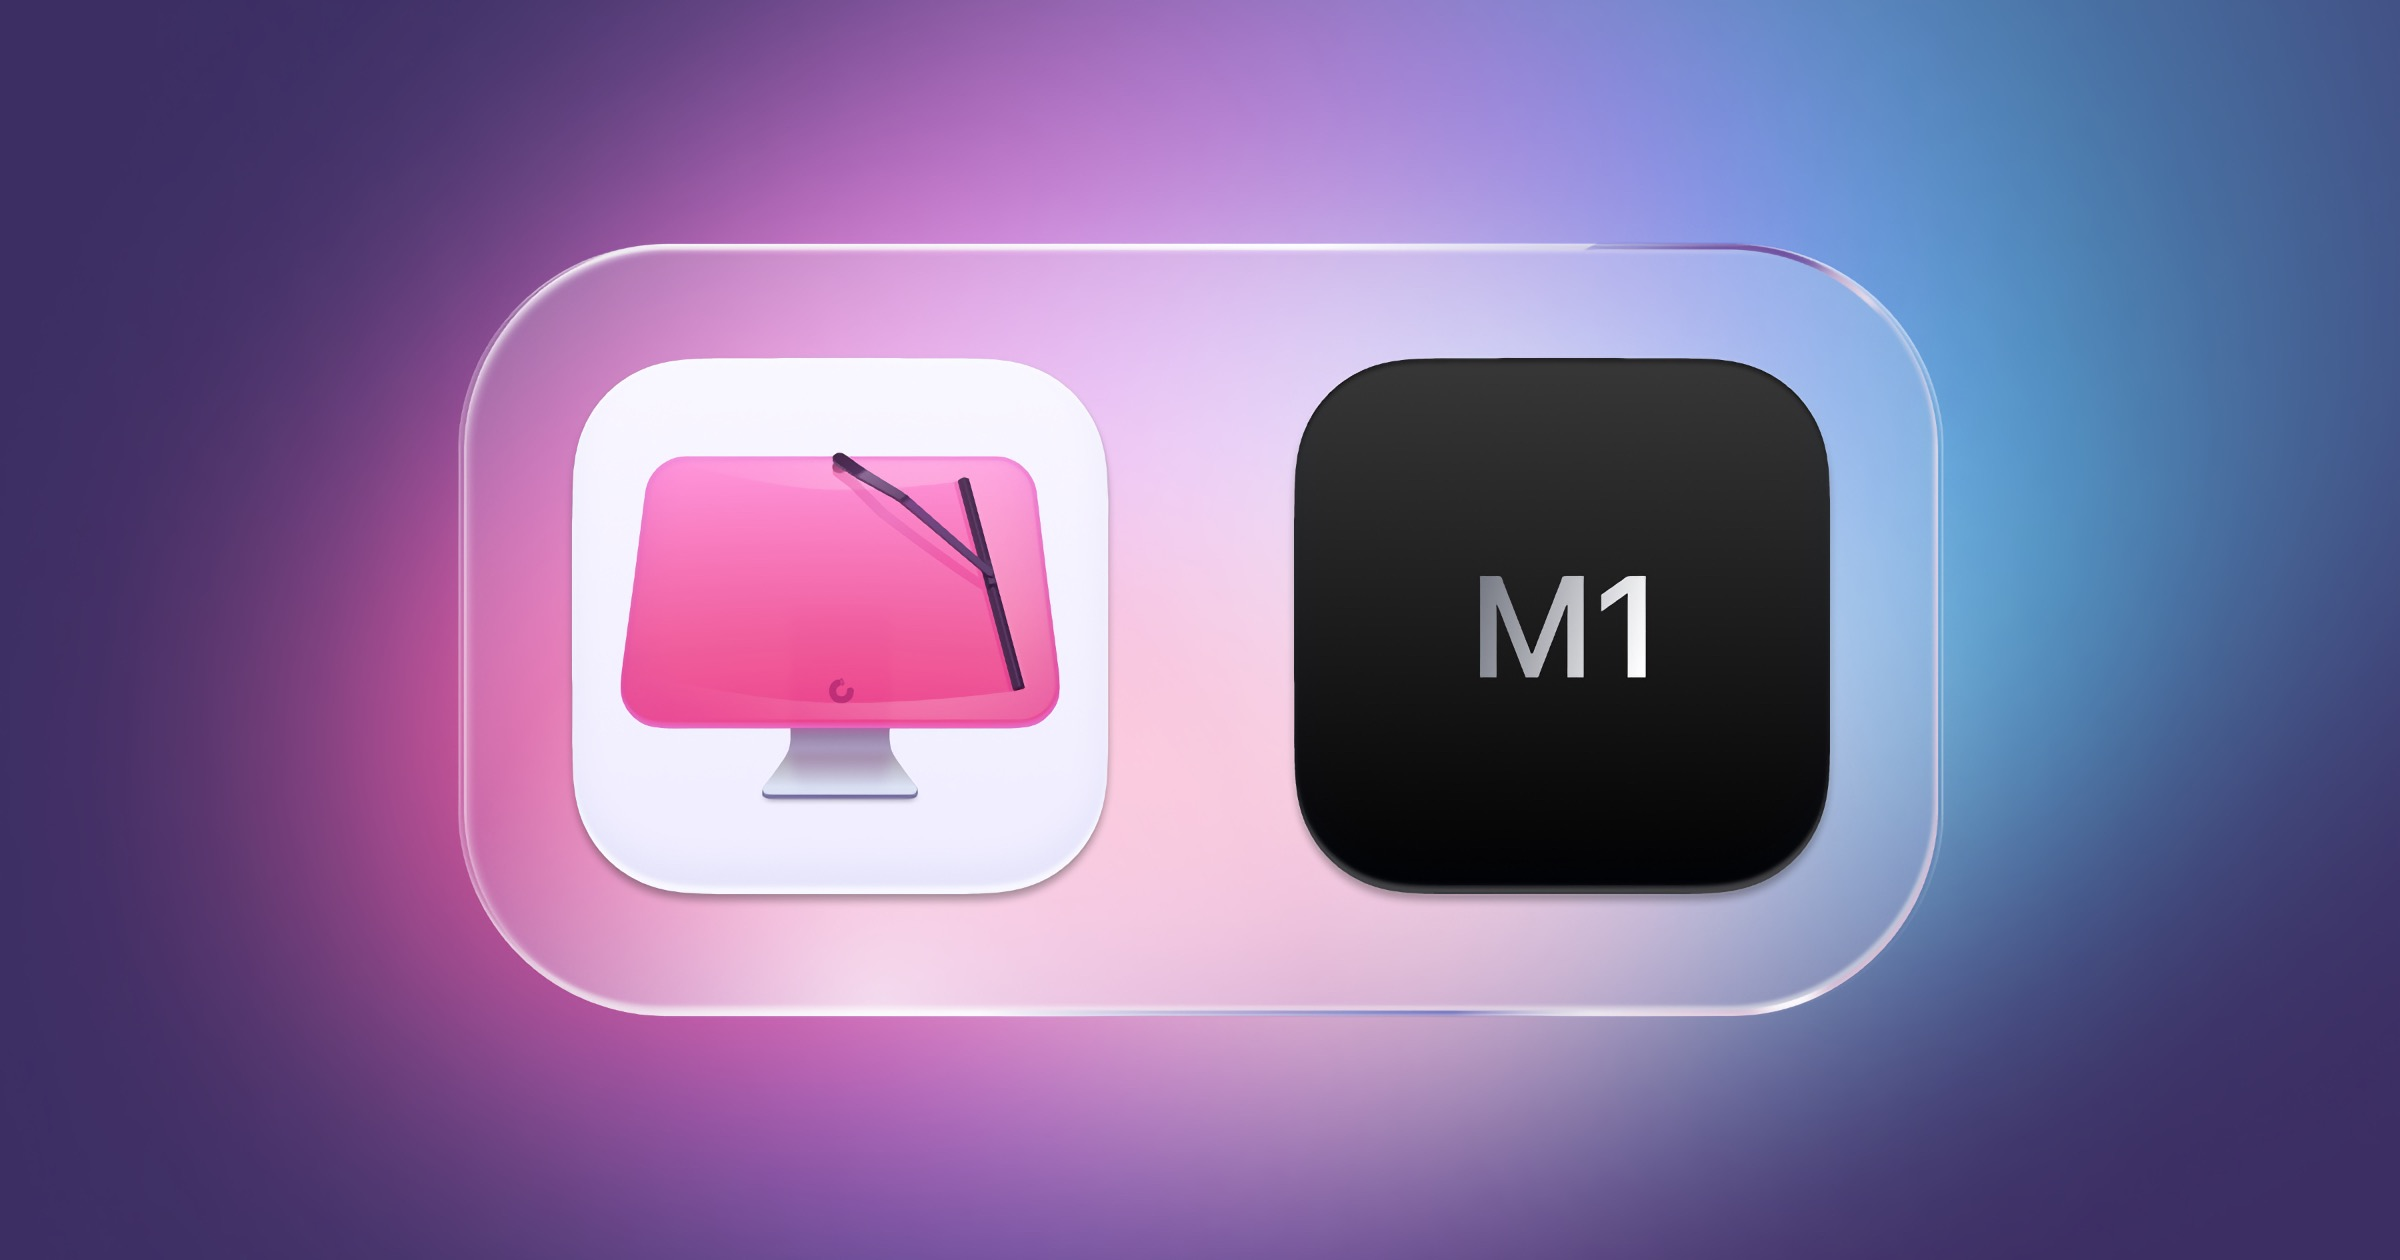 Cleanmymac m1 support